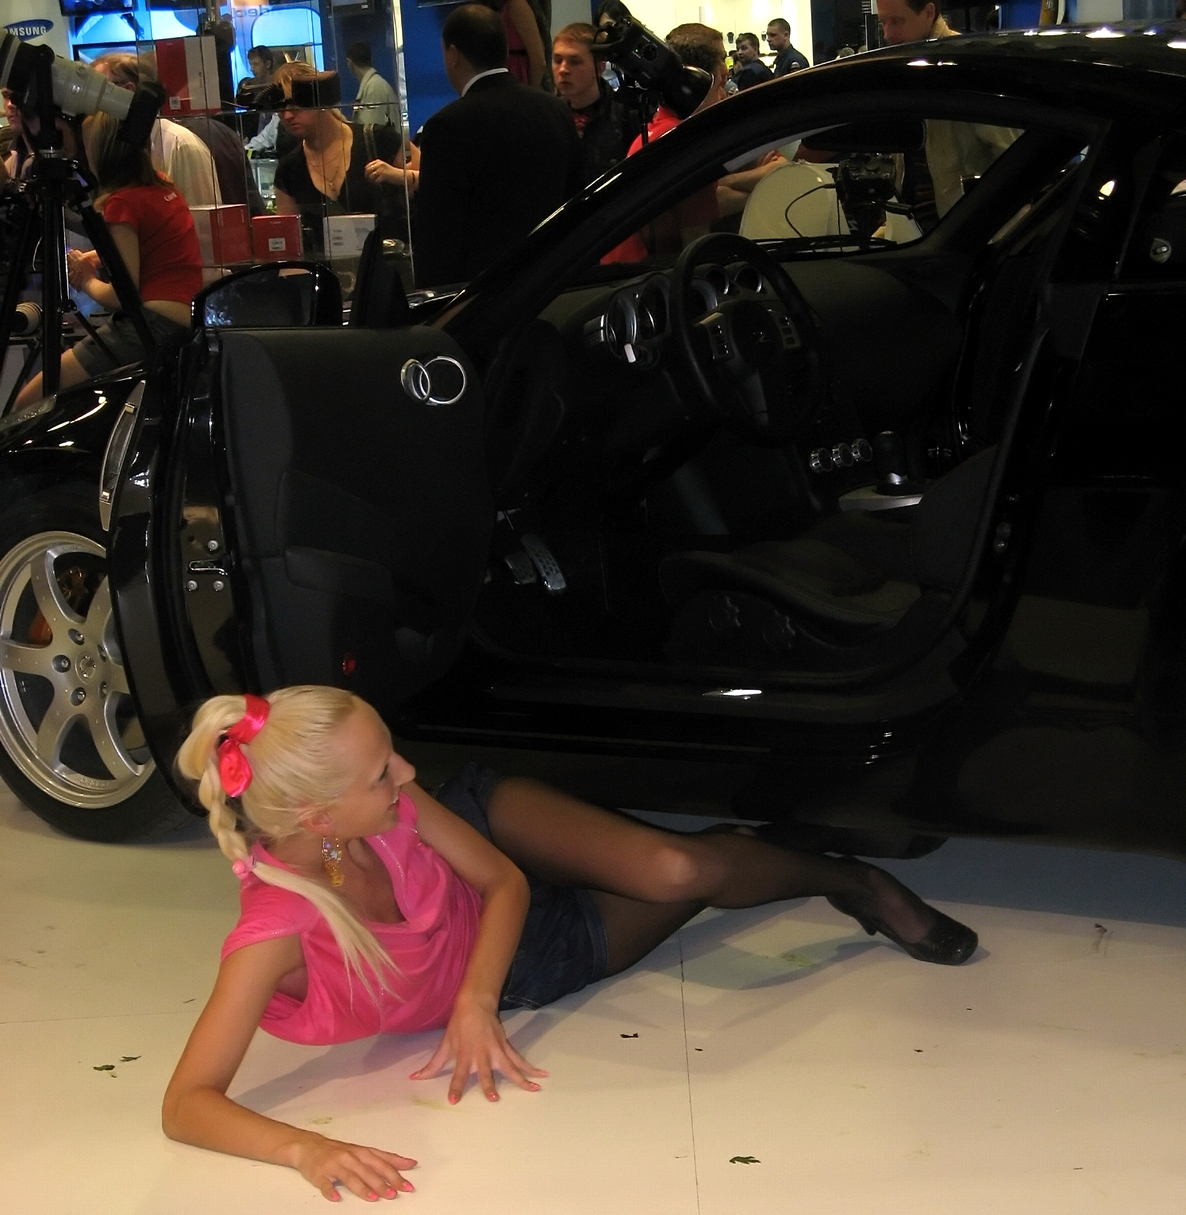 Moscow Blonde Model Posing Near The Car